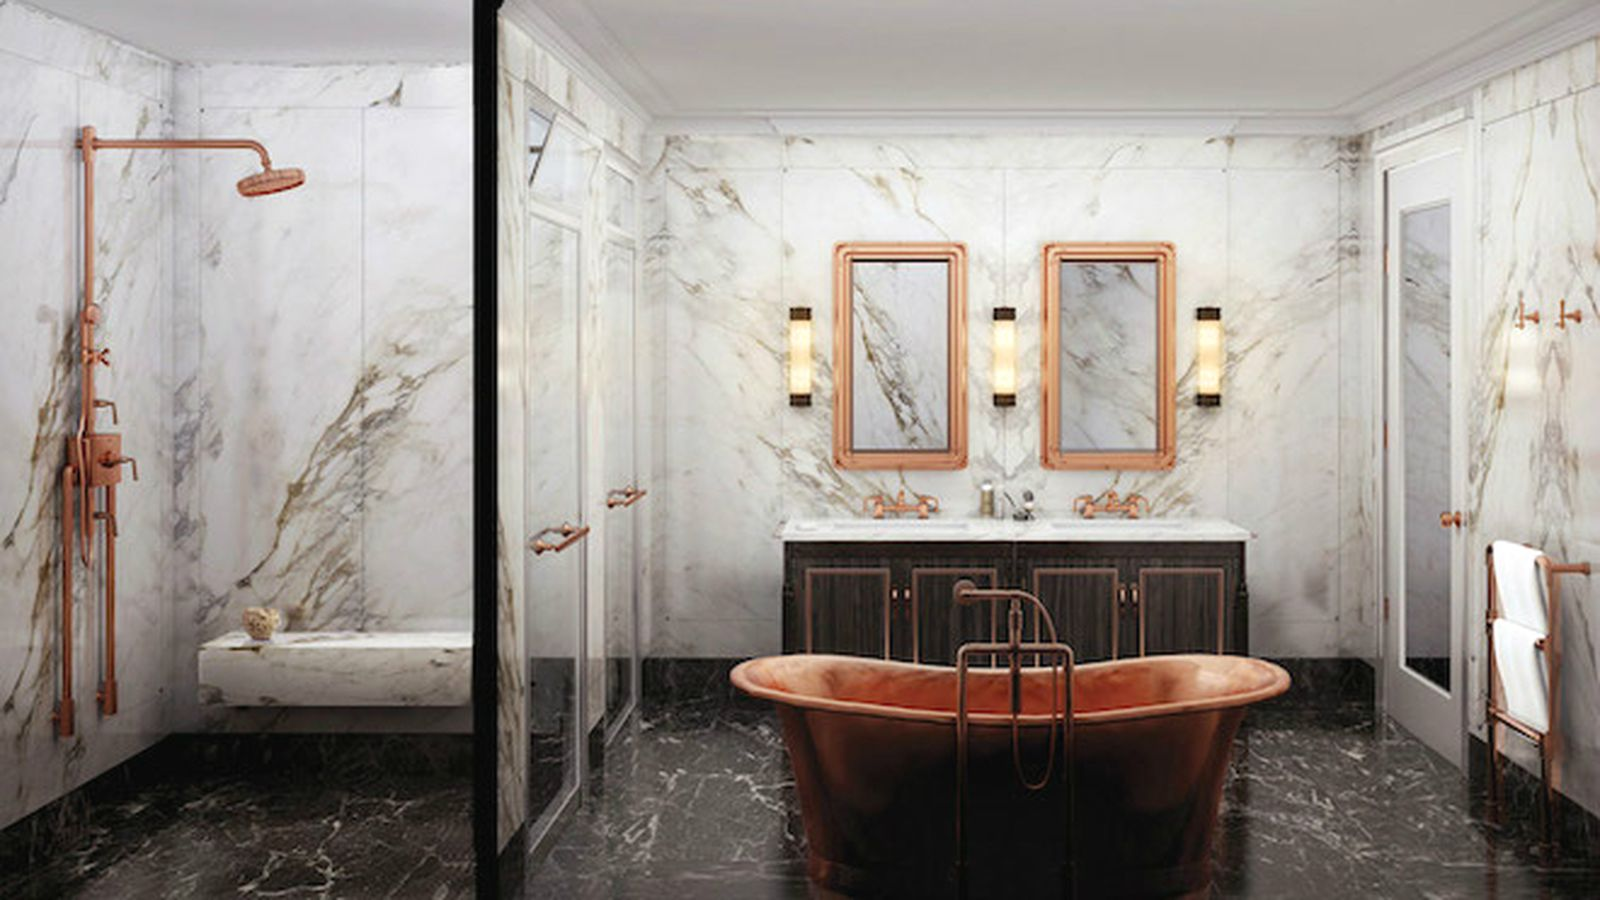 Toilet Room Within the Bathroom: The Ultimate Luxury or